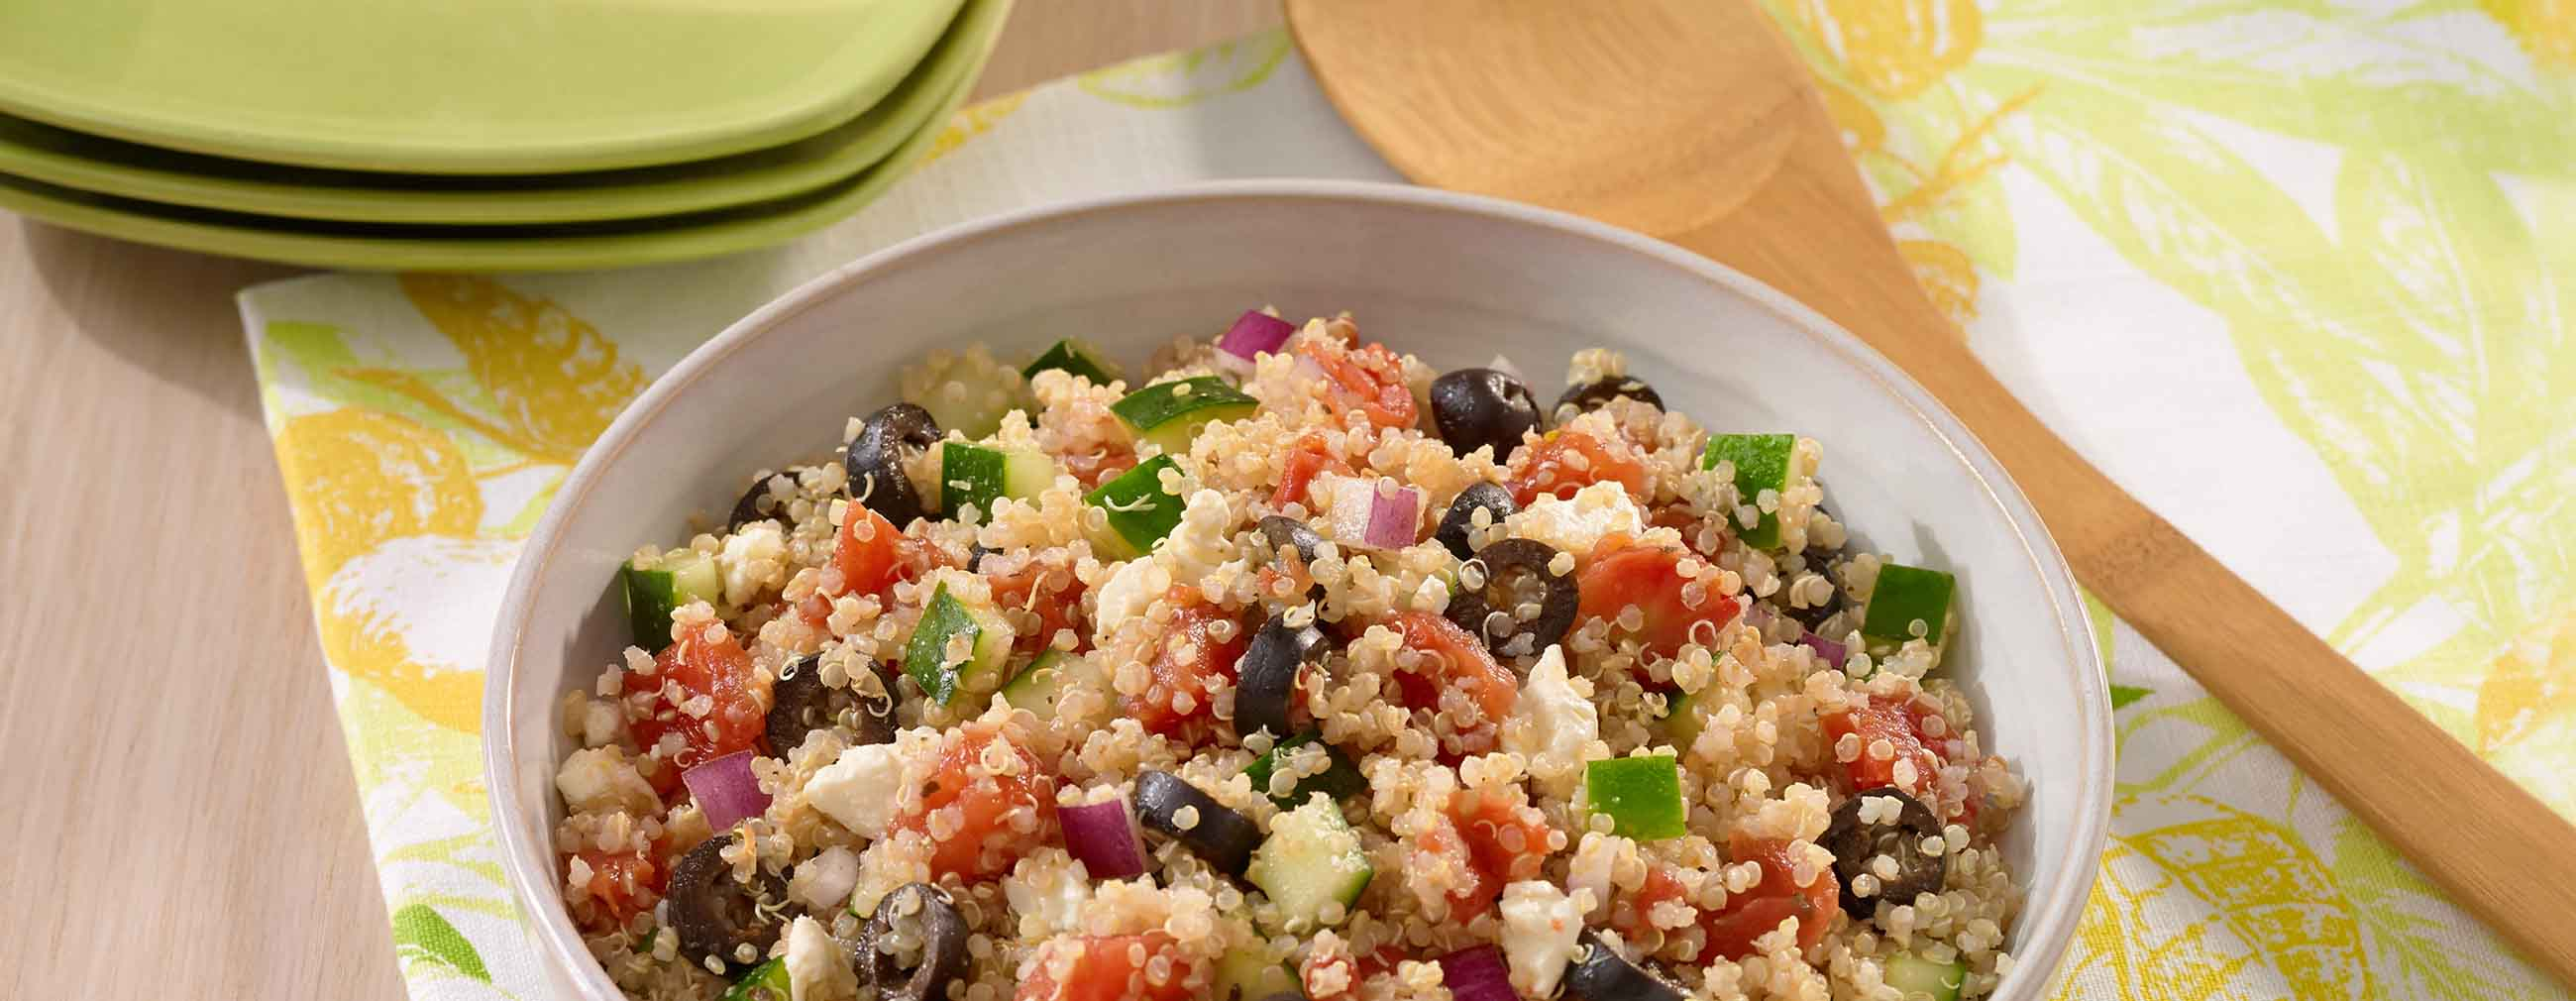 Mediterranean Quinoa Salad Ready Set Eat